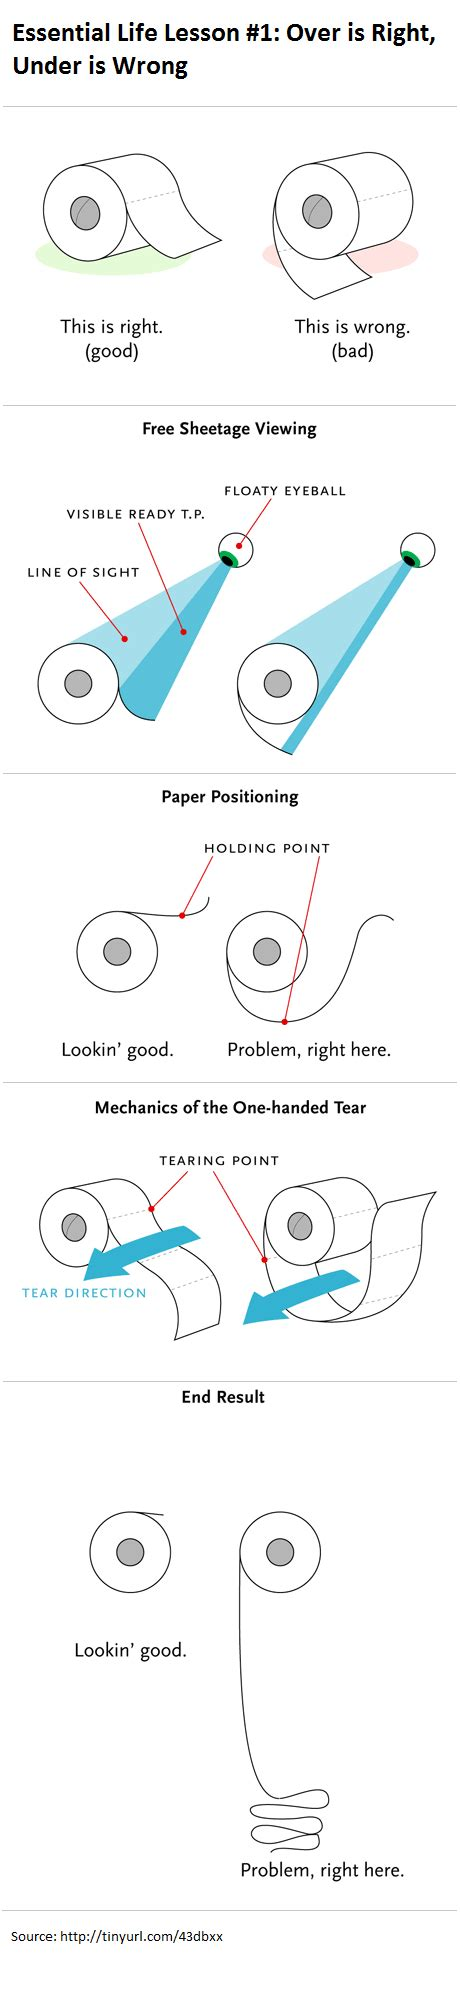 toilet paper proper way hang toilet paper rolls the correct way according to science